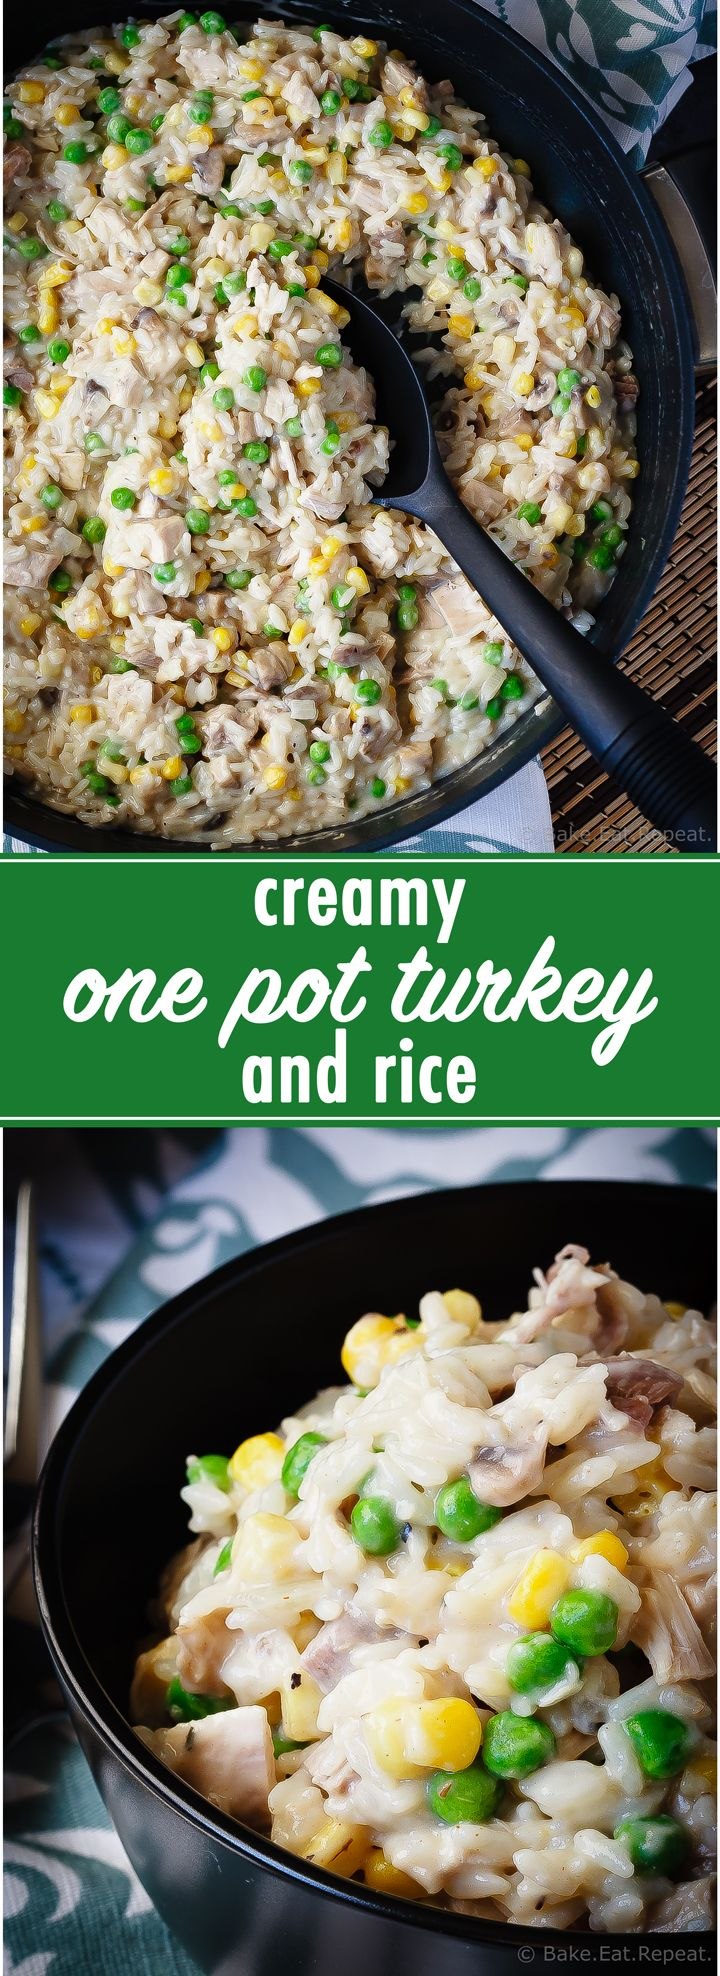 This 30 minute creamy one pot turkey and rice is filled with flavour and a fantastic way to use up your leftover turkey! Fast, easy, delicious.